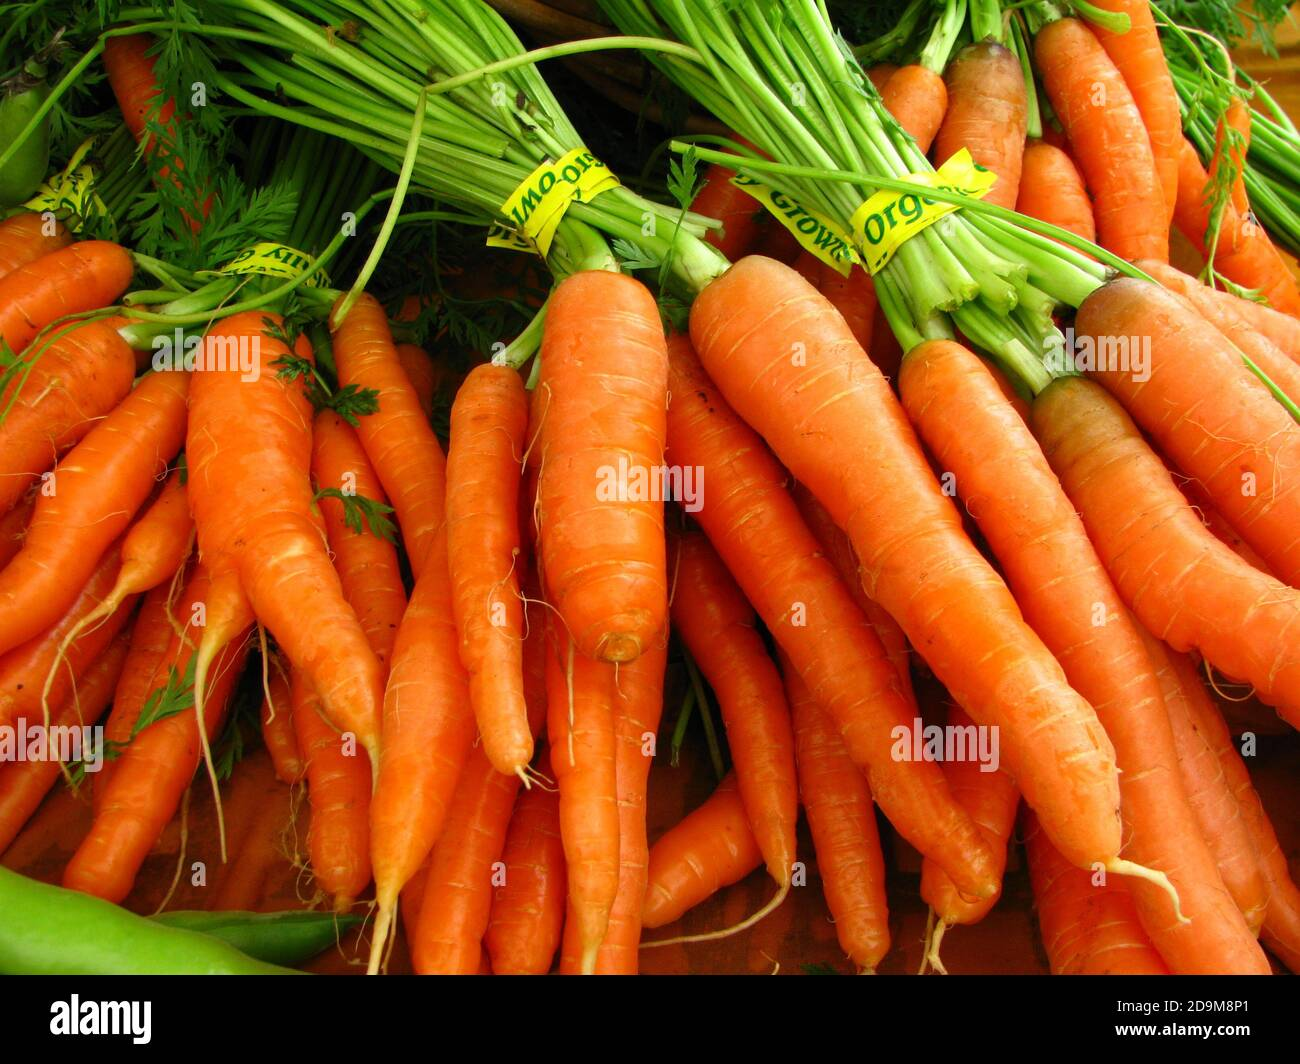 Closeup shot of fresh bundles of carrots with yellow tape displayed in a grocery Stock Photo